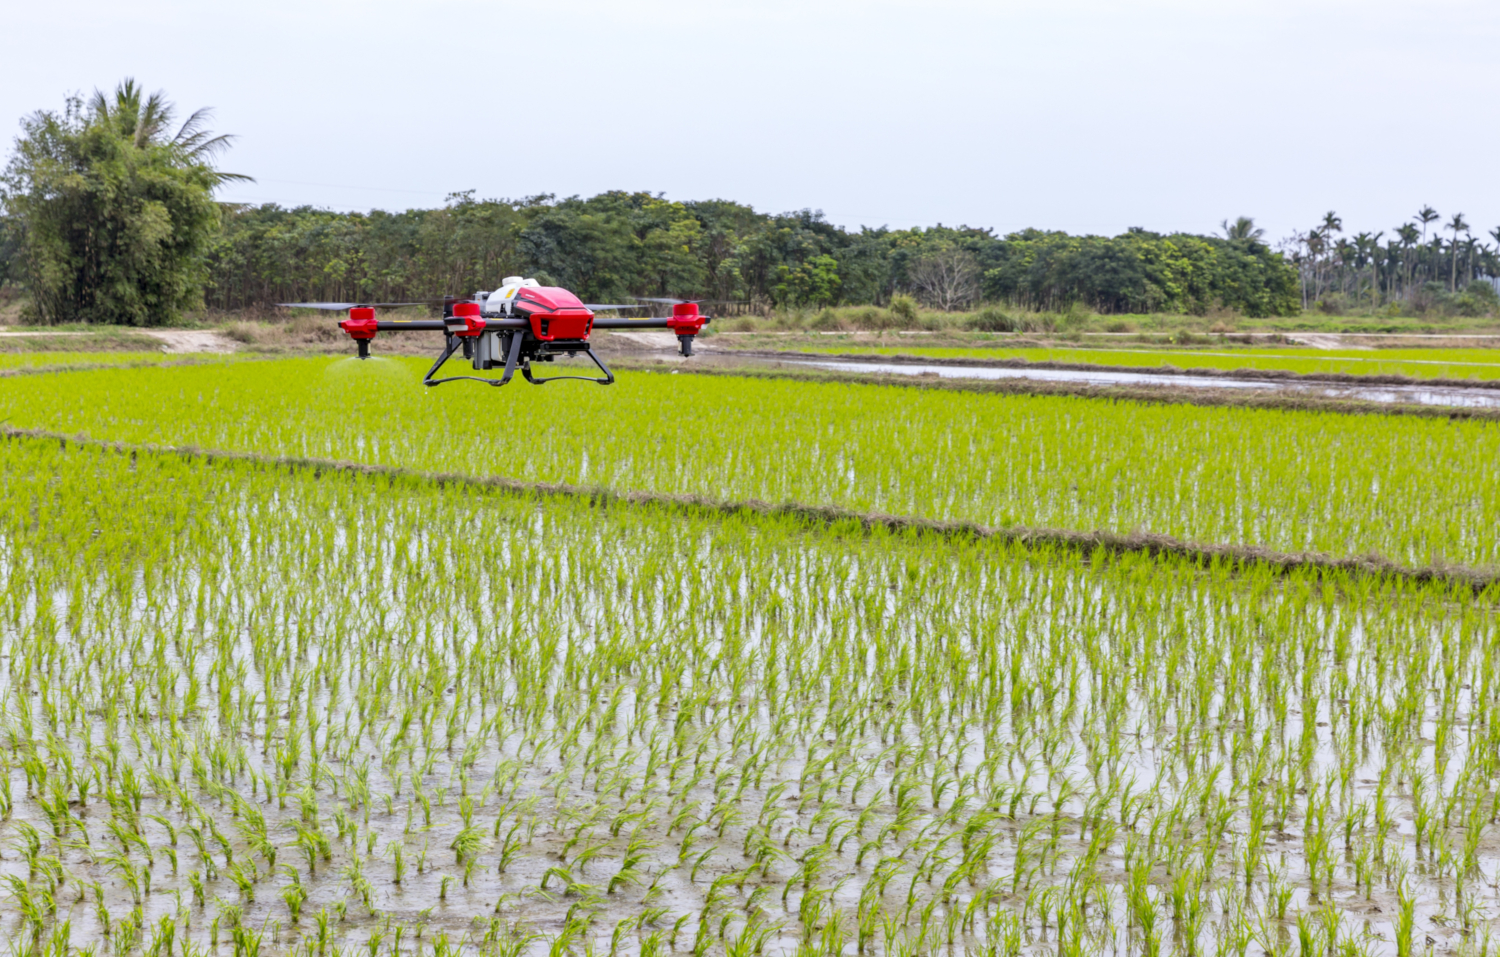 Drone flying over a rice field (Image by viya0414 from Pixabay)